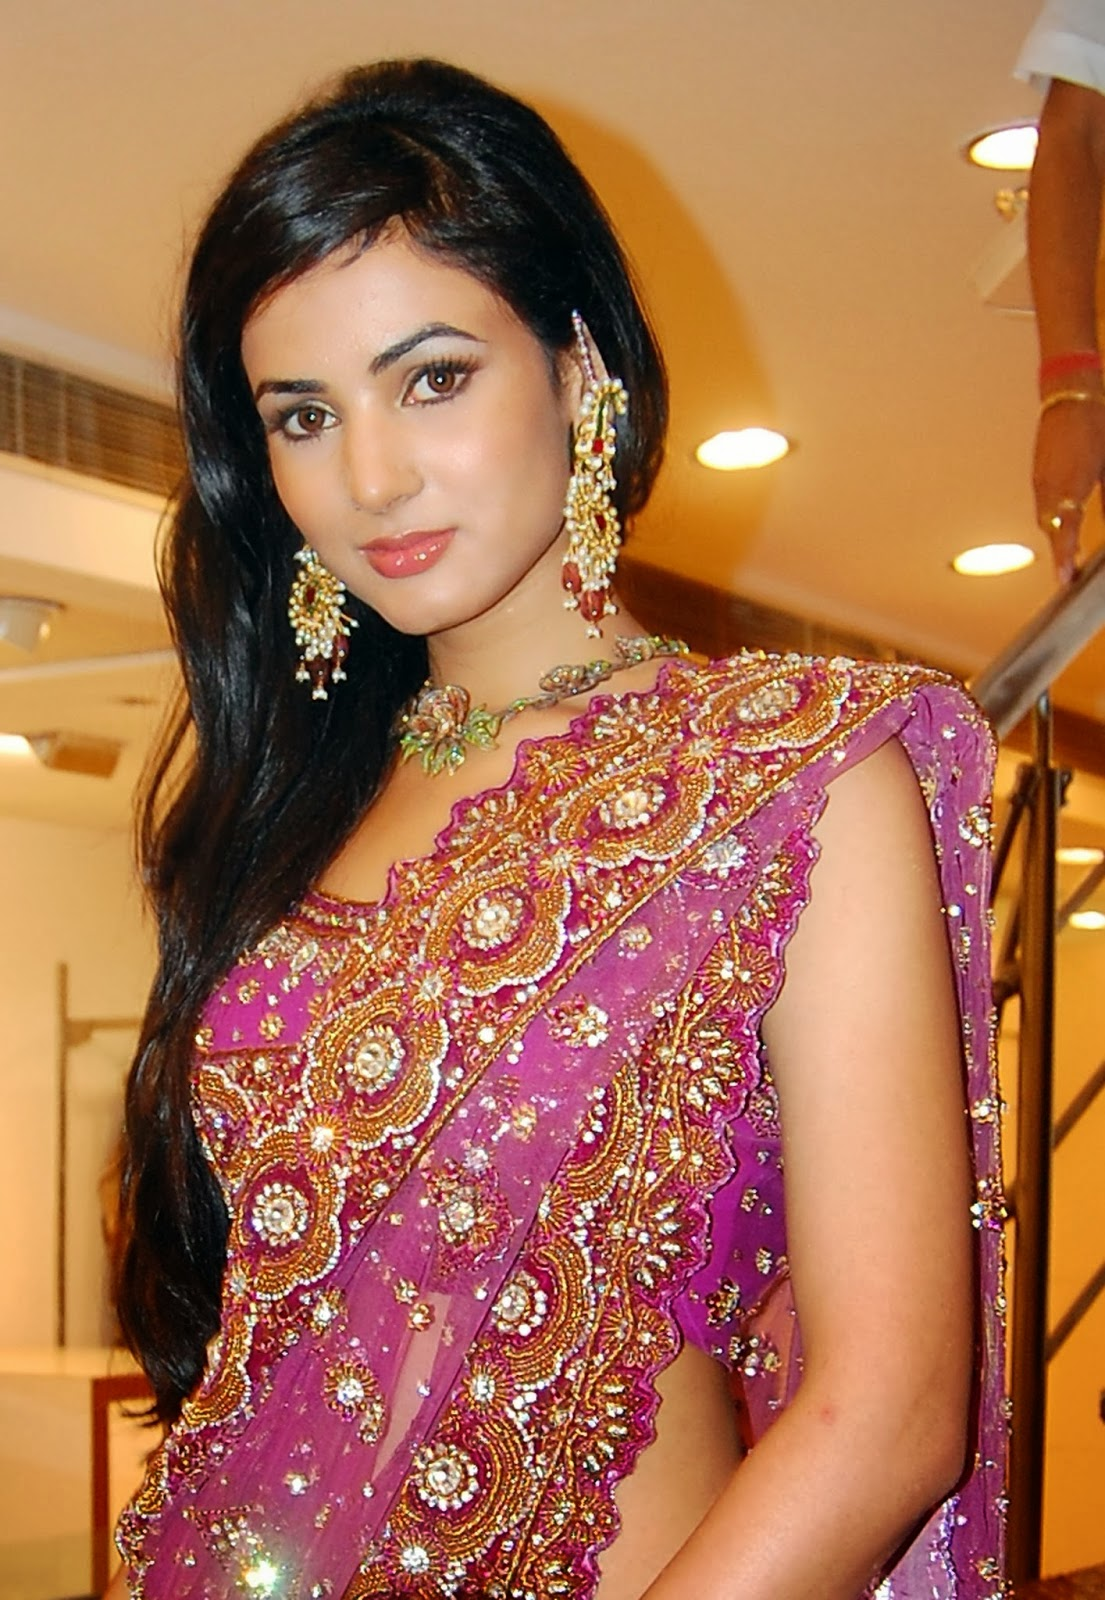 Punjabi Girl Wallpaper Full Hd Fukrey Look Sonal Chauhan Hot Hd Wallpapers 2013